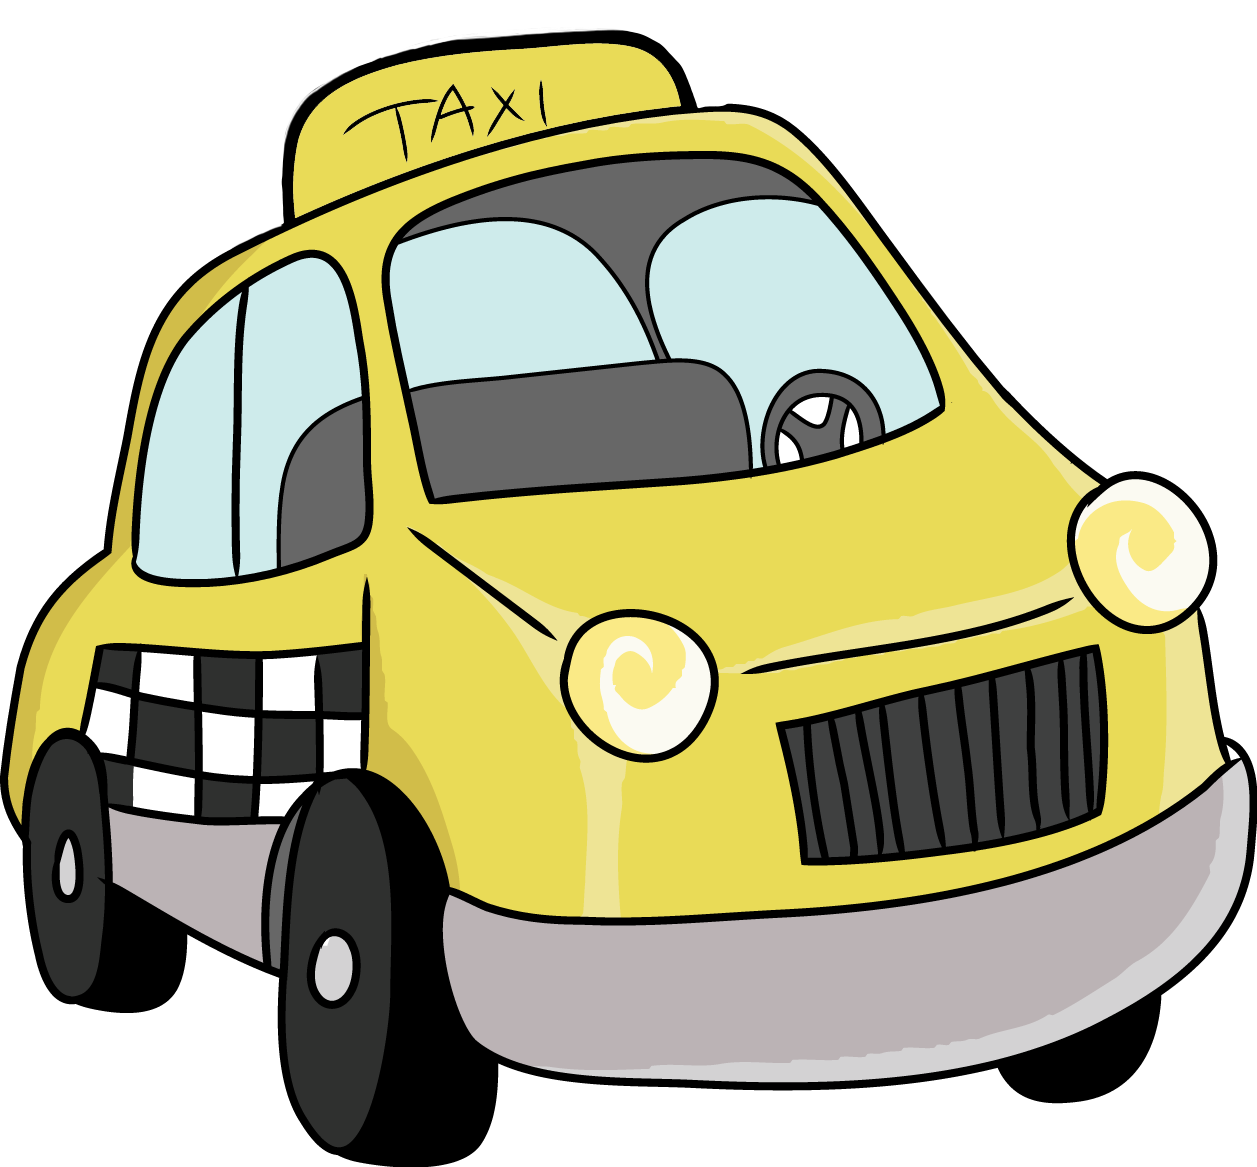 City car clipart banner Toy Taxi Car. Cartoon Yellow Cab Vector Illustration. Stock Vector ... banner